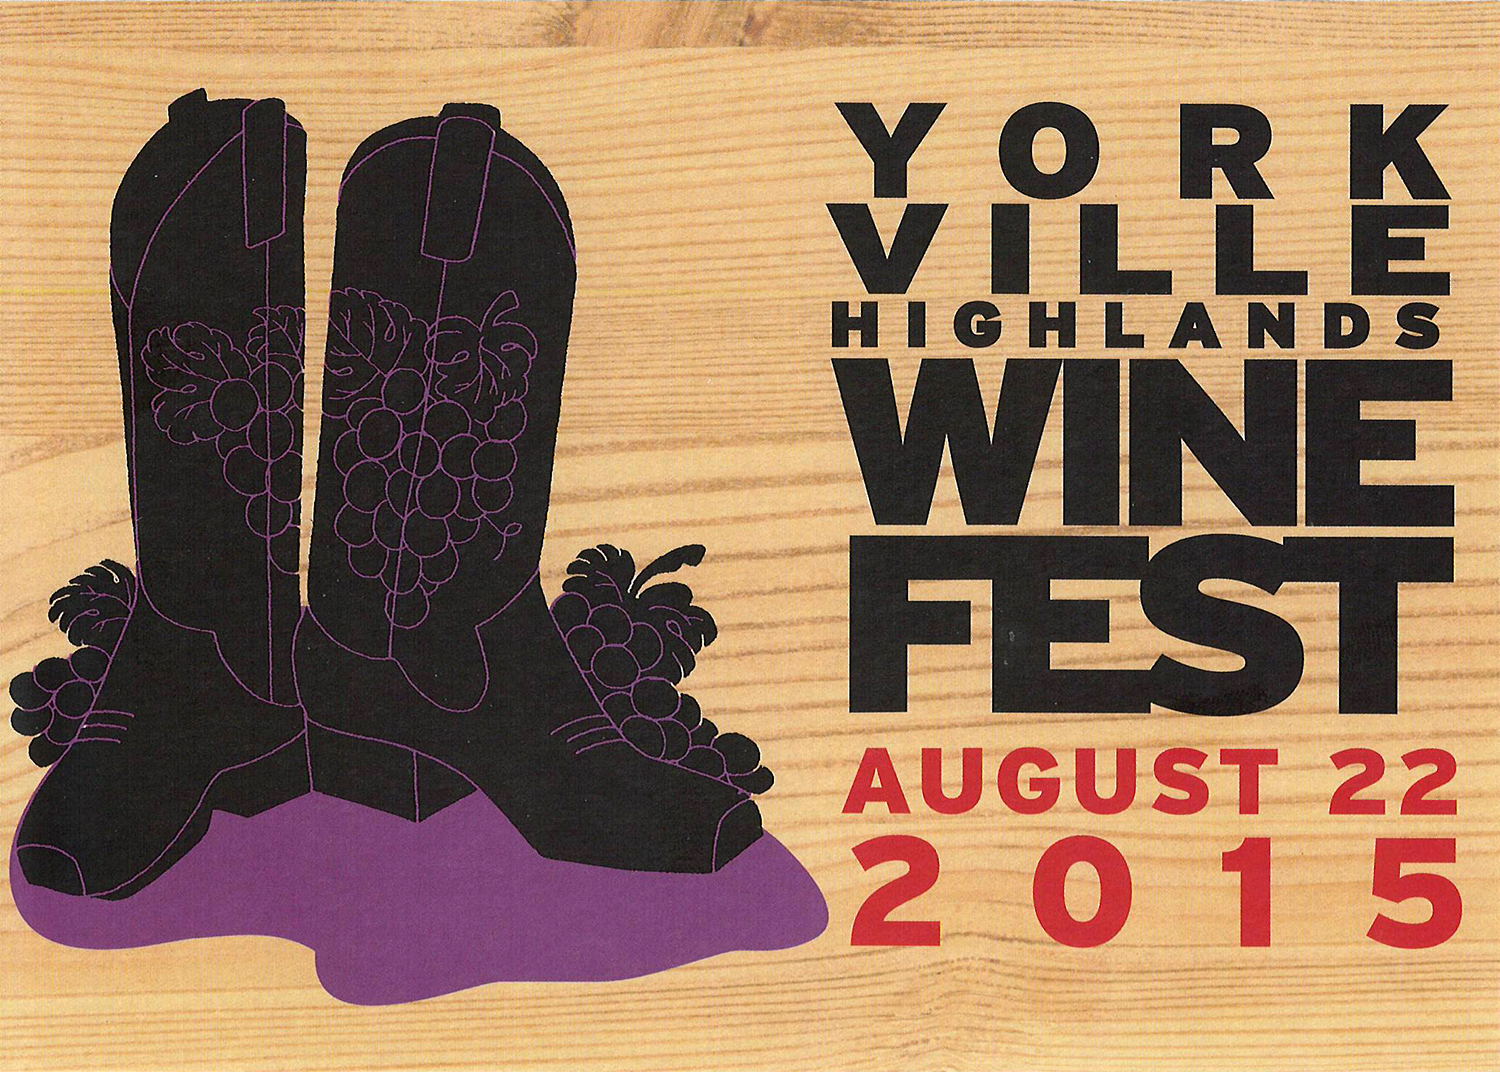 Yorville_Highlands_Wine_Fest_2015.jpg